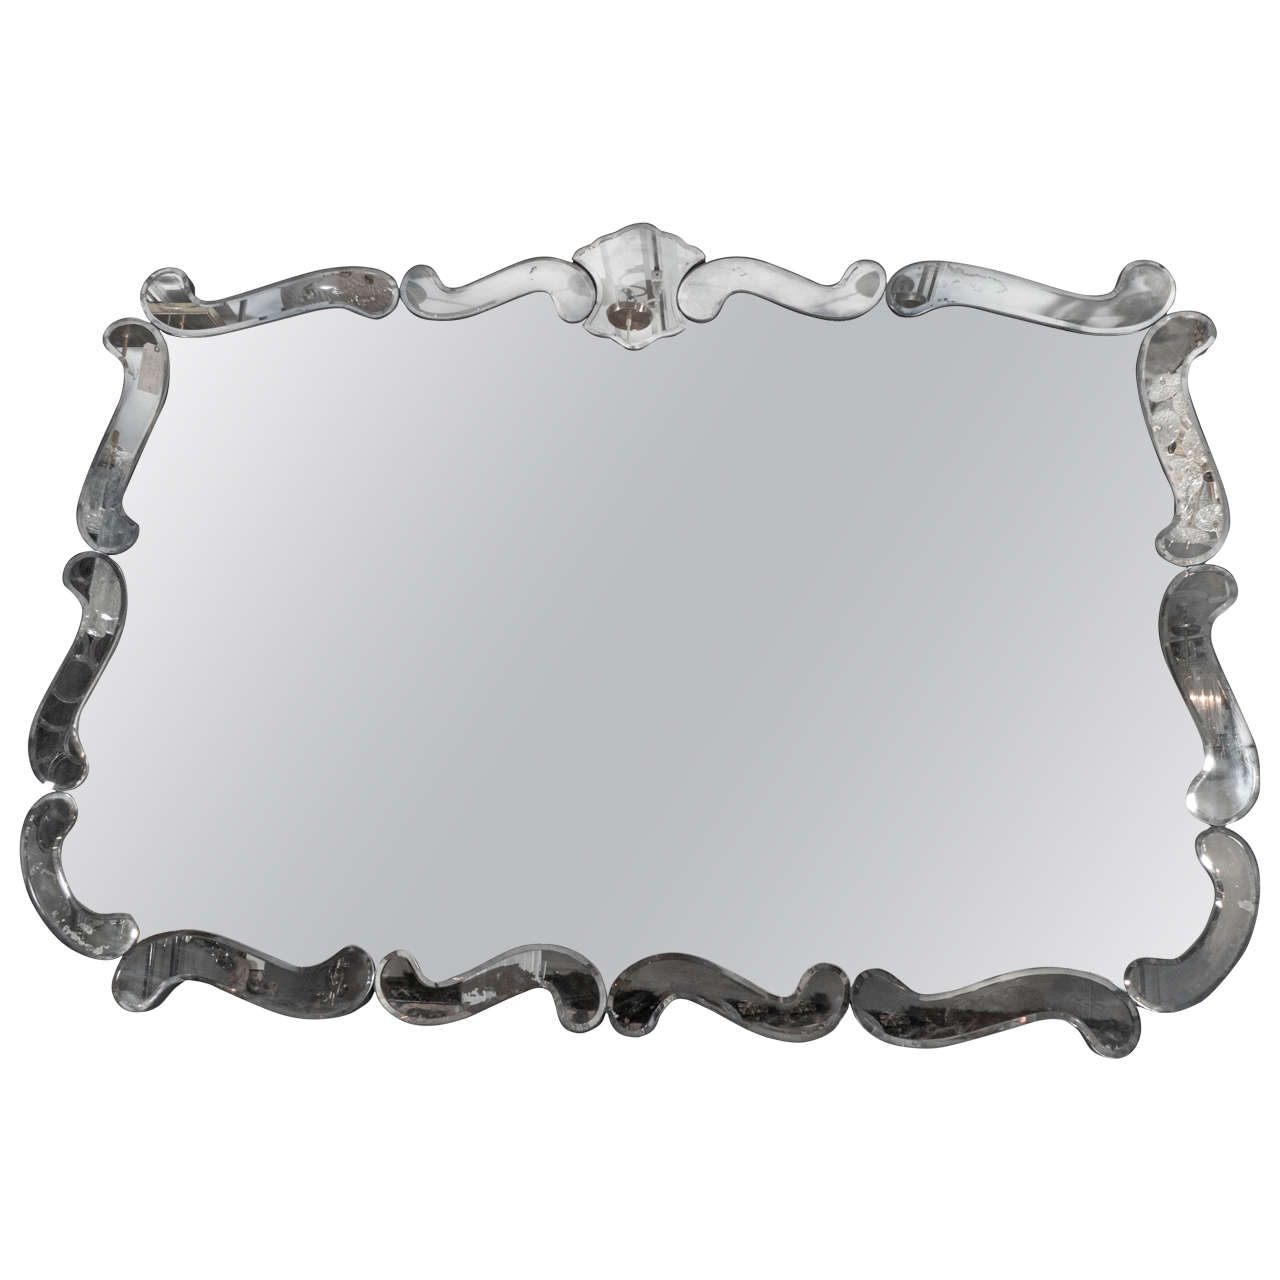 1940s Hollywood Regency Smoke and Clear Mirror